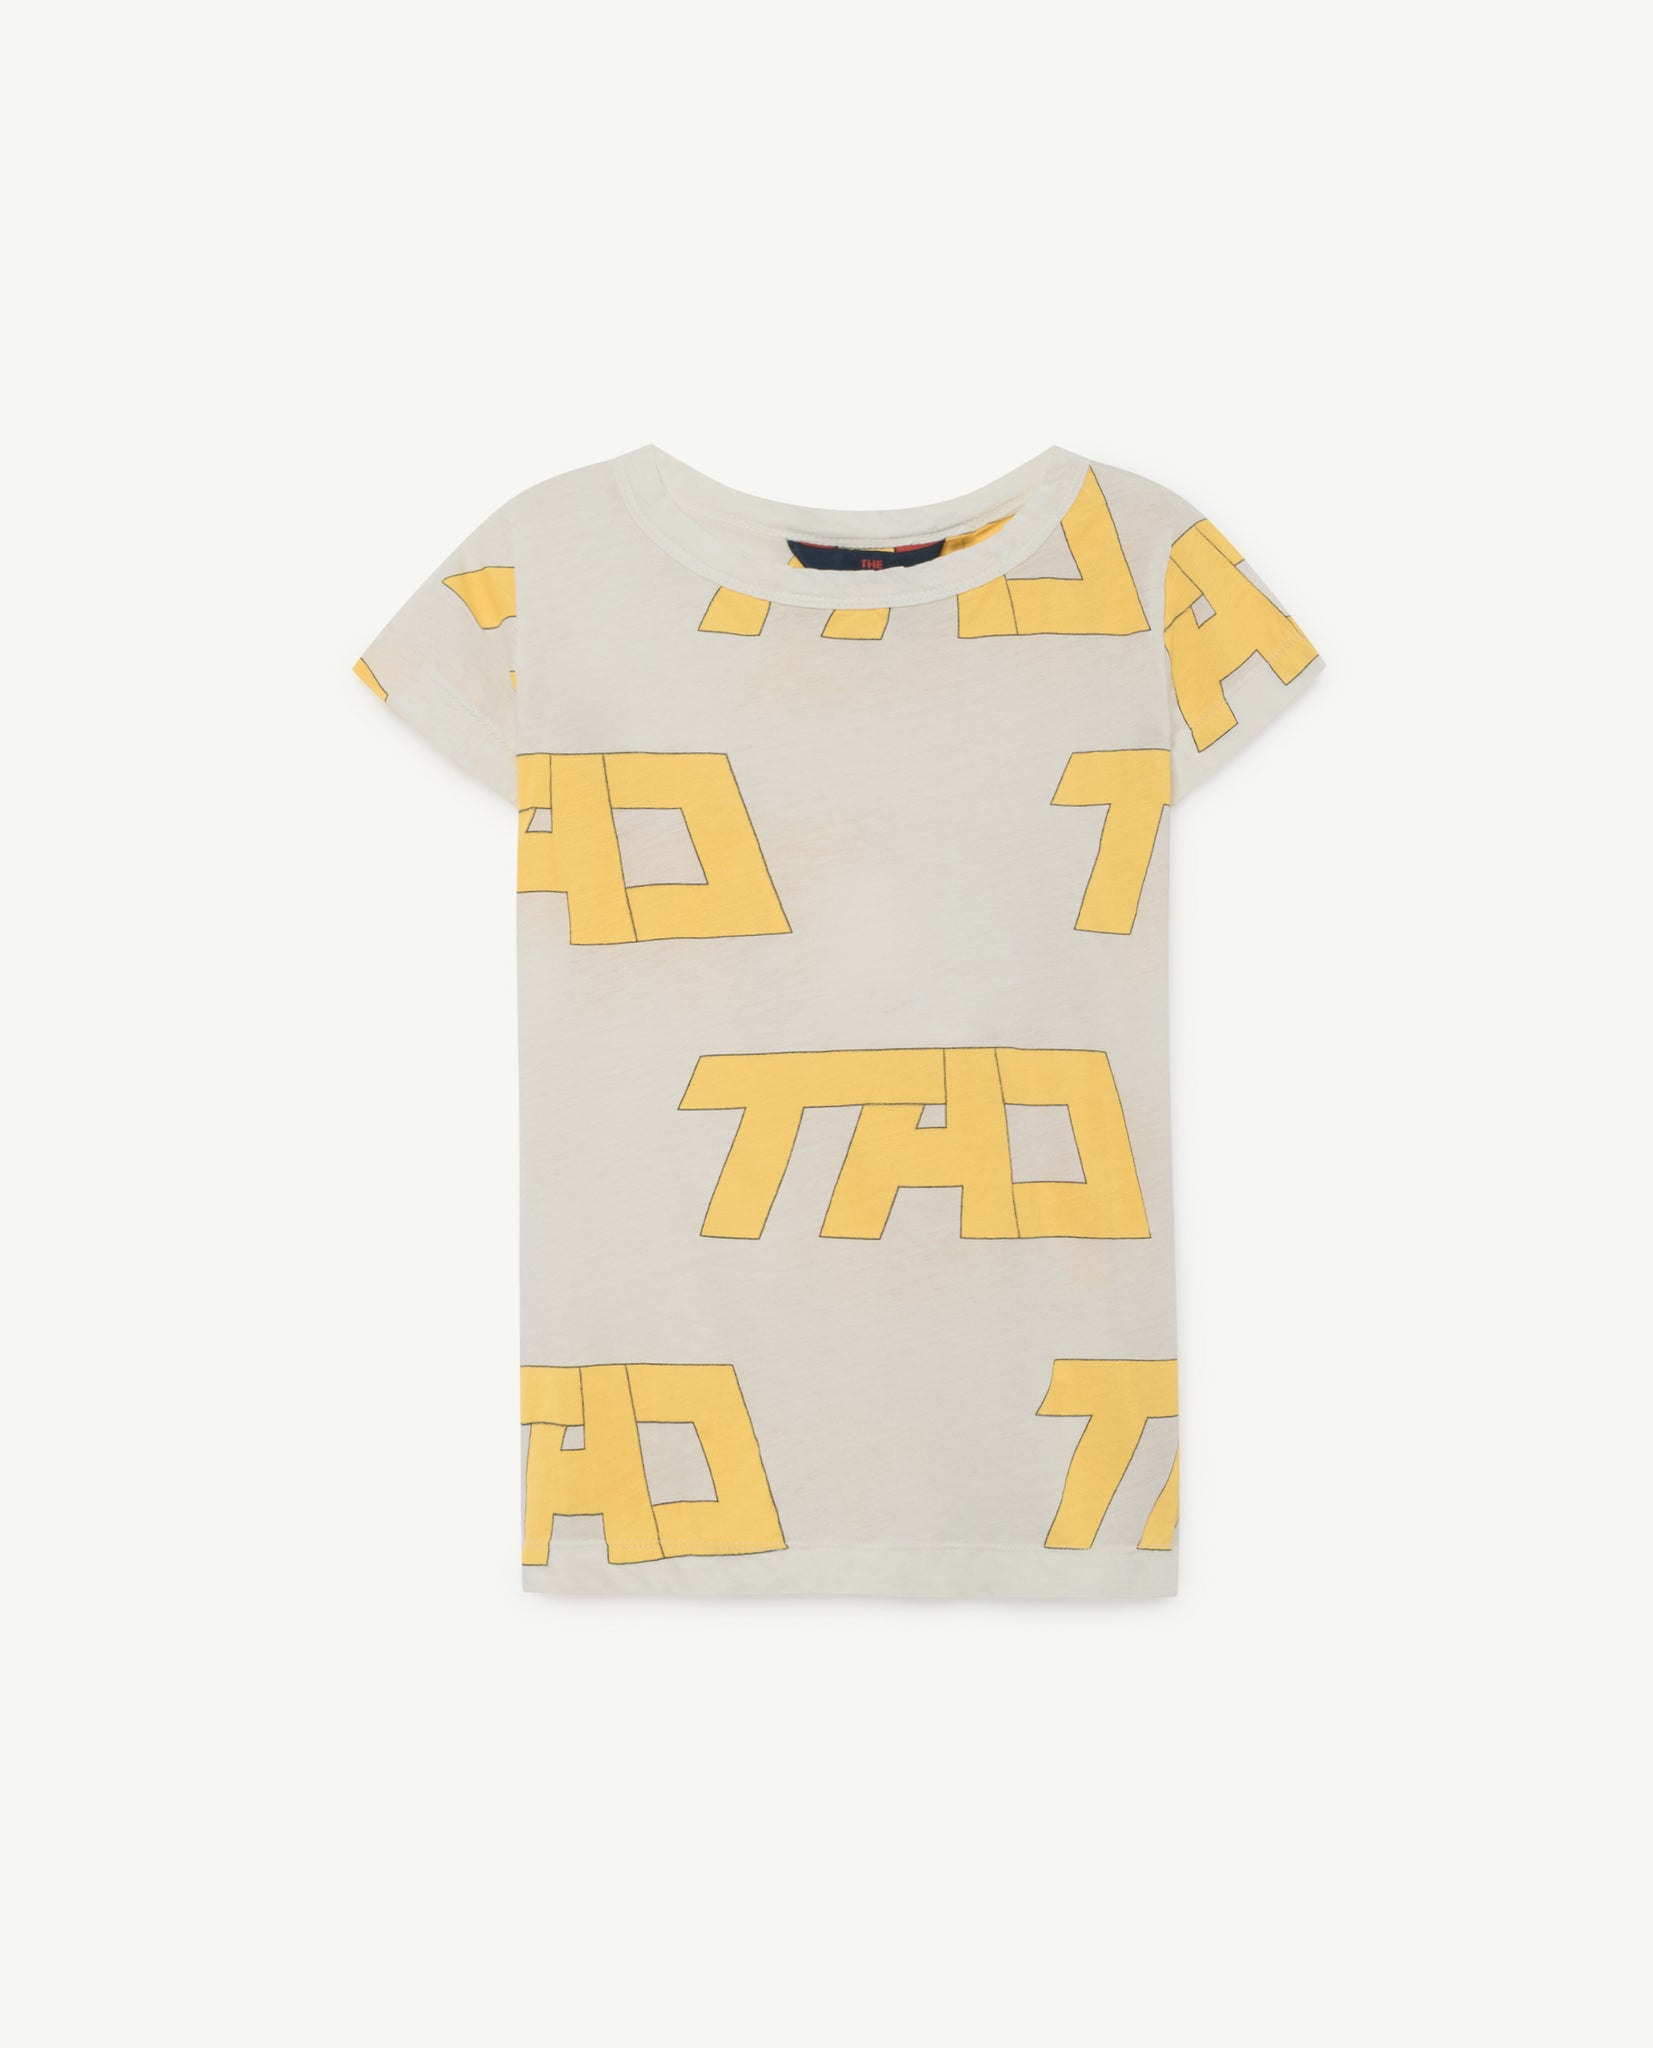 HIPPO KIDS T-SHIRT // WHITE TAO